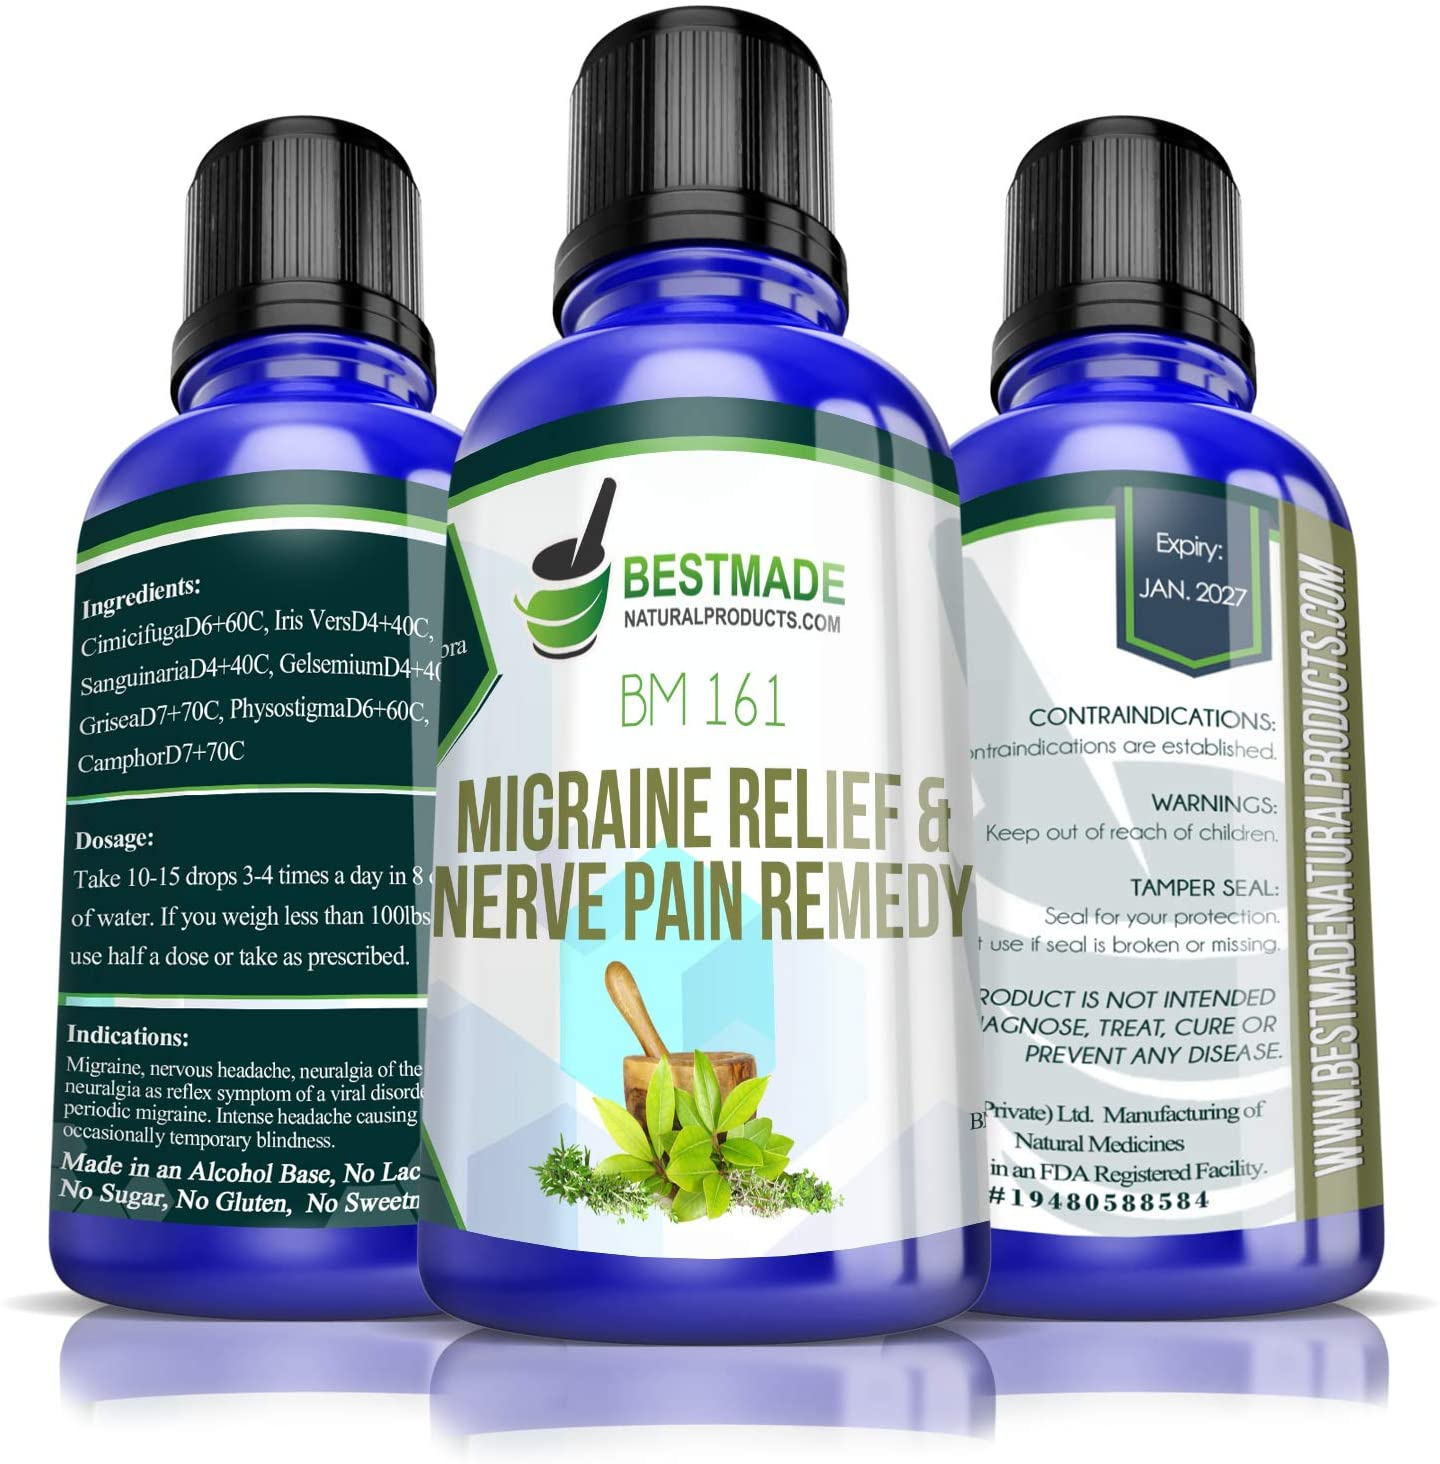 Natural Remedy for Migraines and Nerve Pain | Useful for Throbbing Headaches, Sensitivity to Light and Nausea | Relieves Neuralgia of the Body & Face Effective for Nerve Pain Resulting from Rheumatism